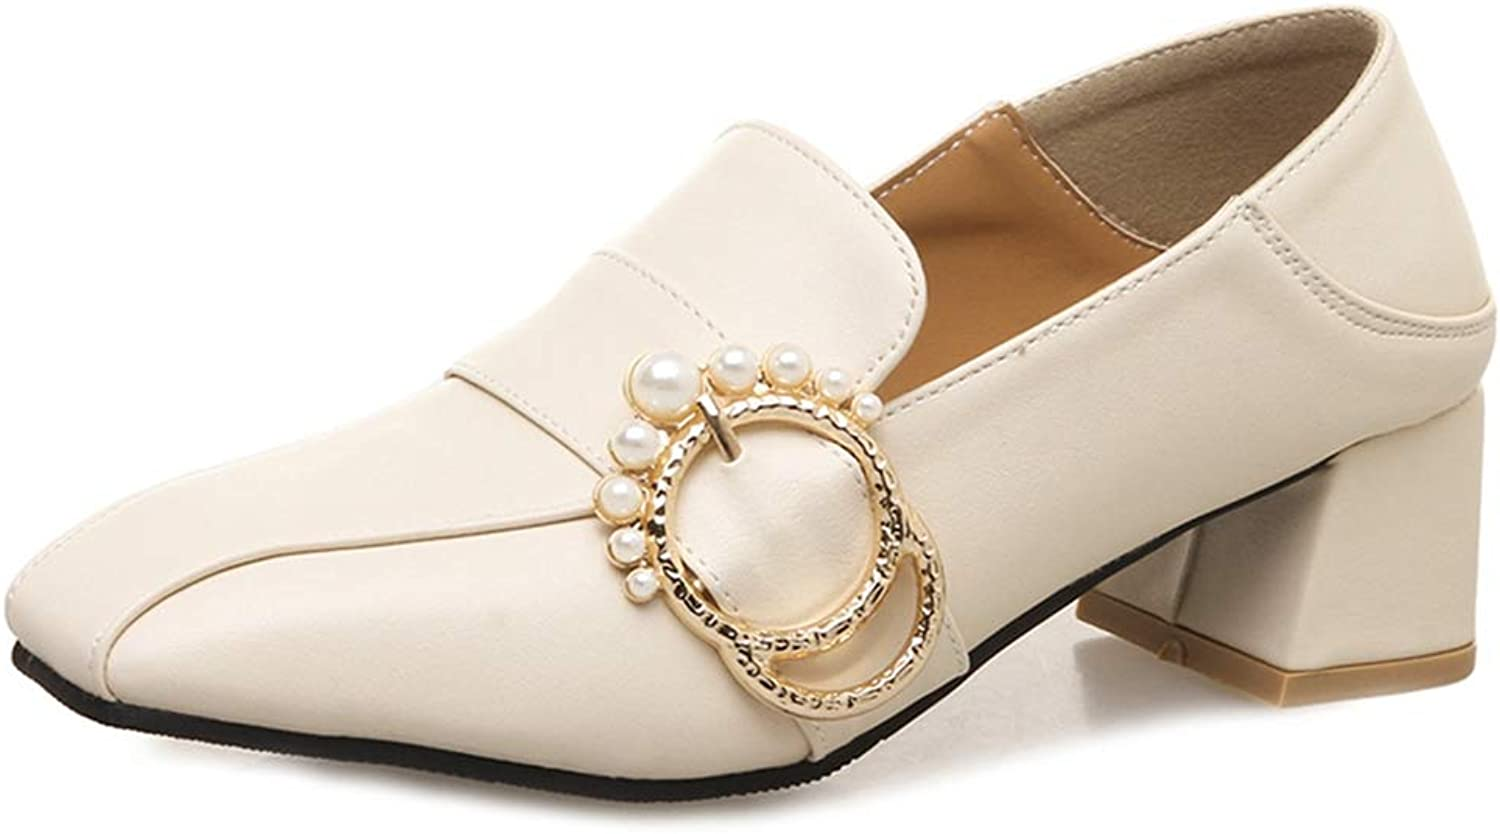 GIY Women's Square Toe Oxford Loafer shoes with Buckle Slip-On Chunky Mid Block Heel Backless Pump Brogue